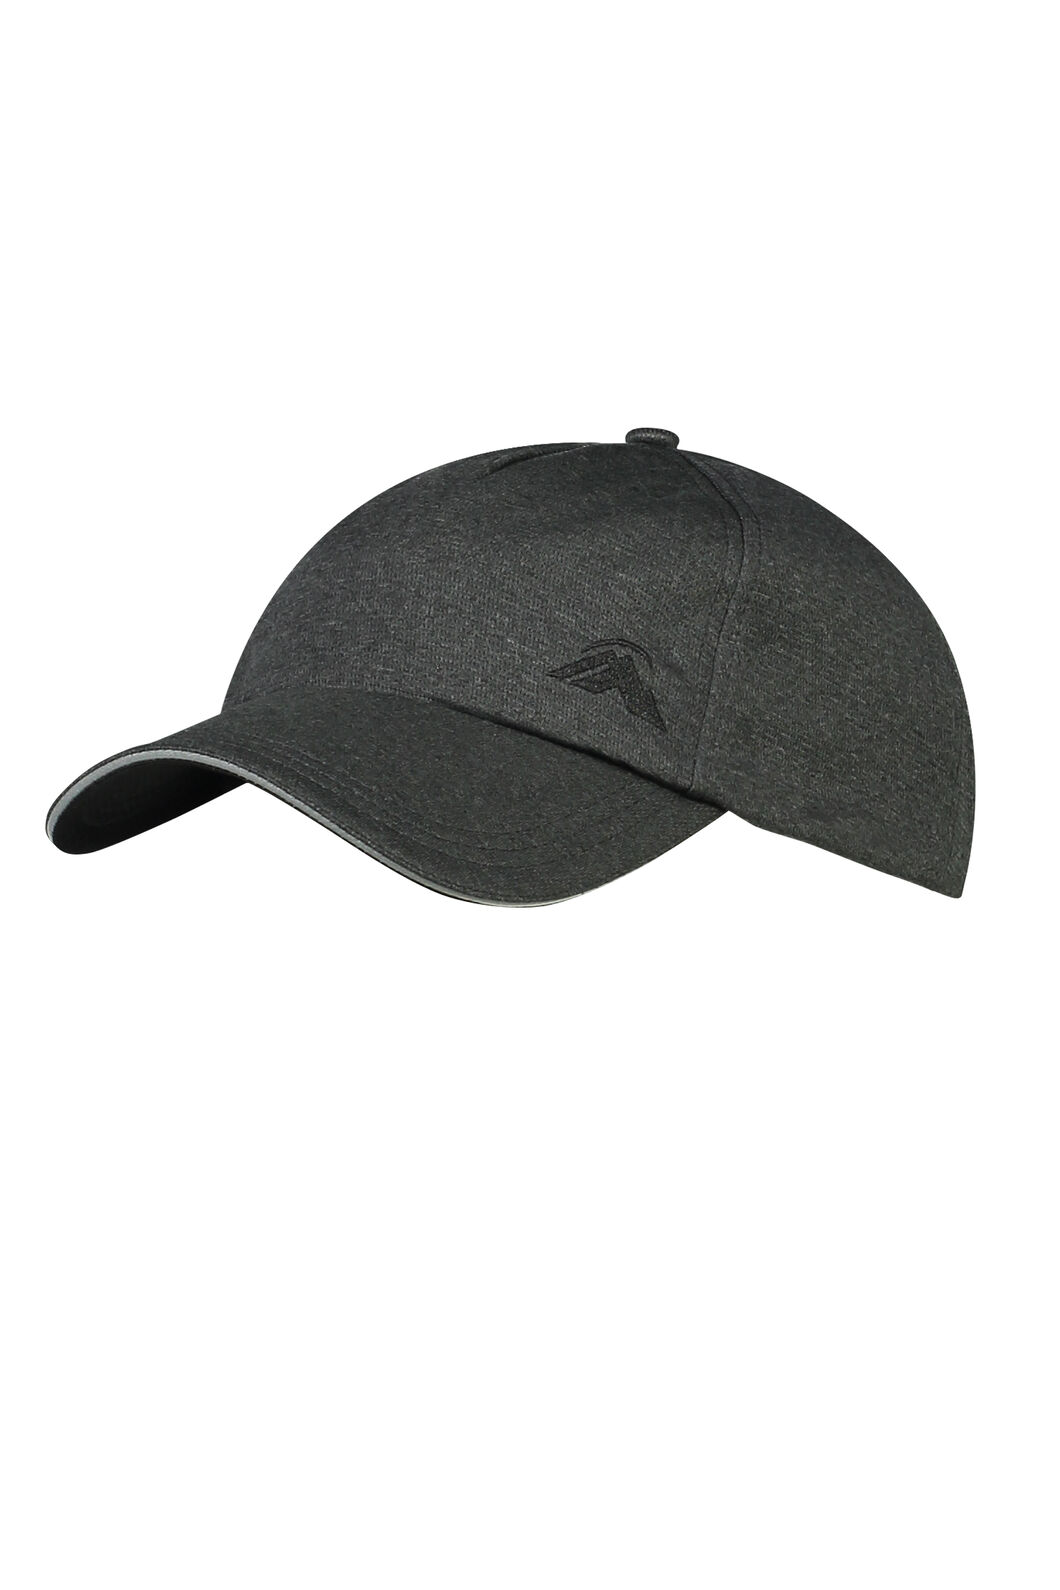 Macpac Trail Cap, Dark Grey, hi-res